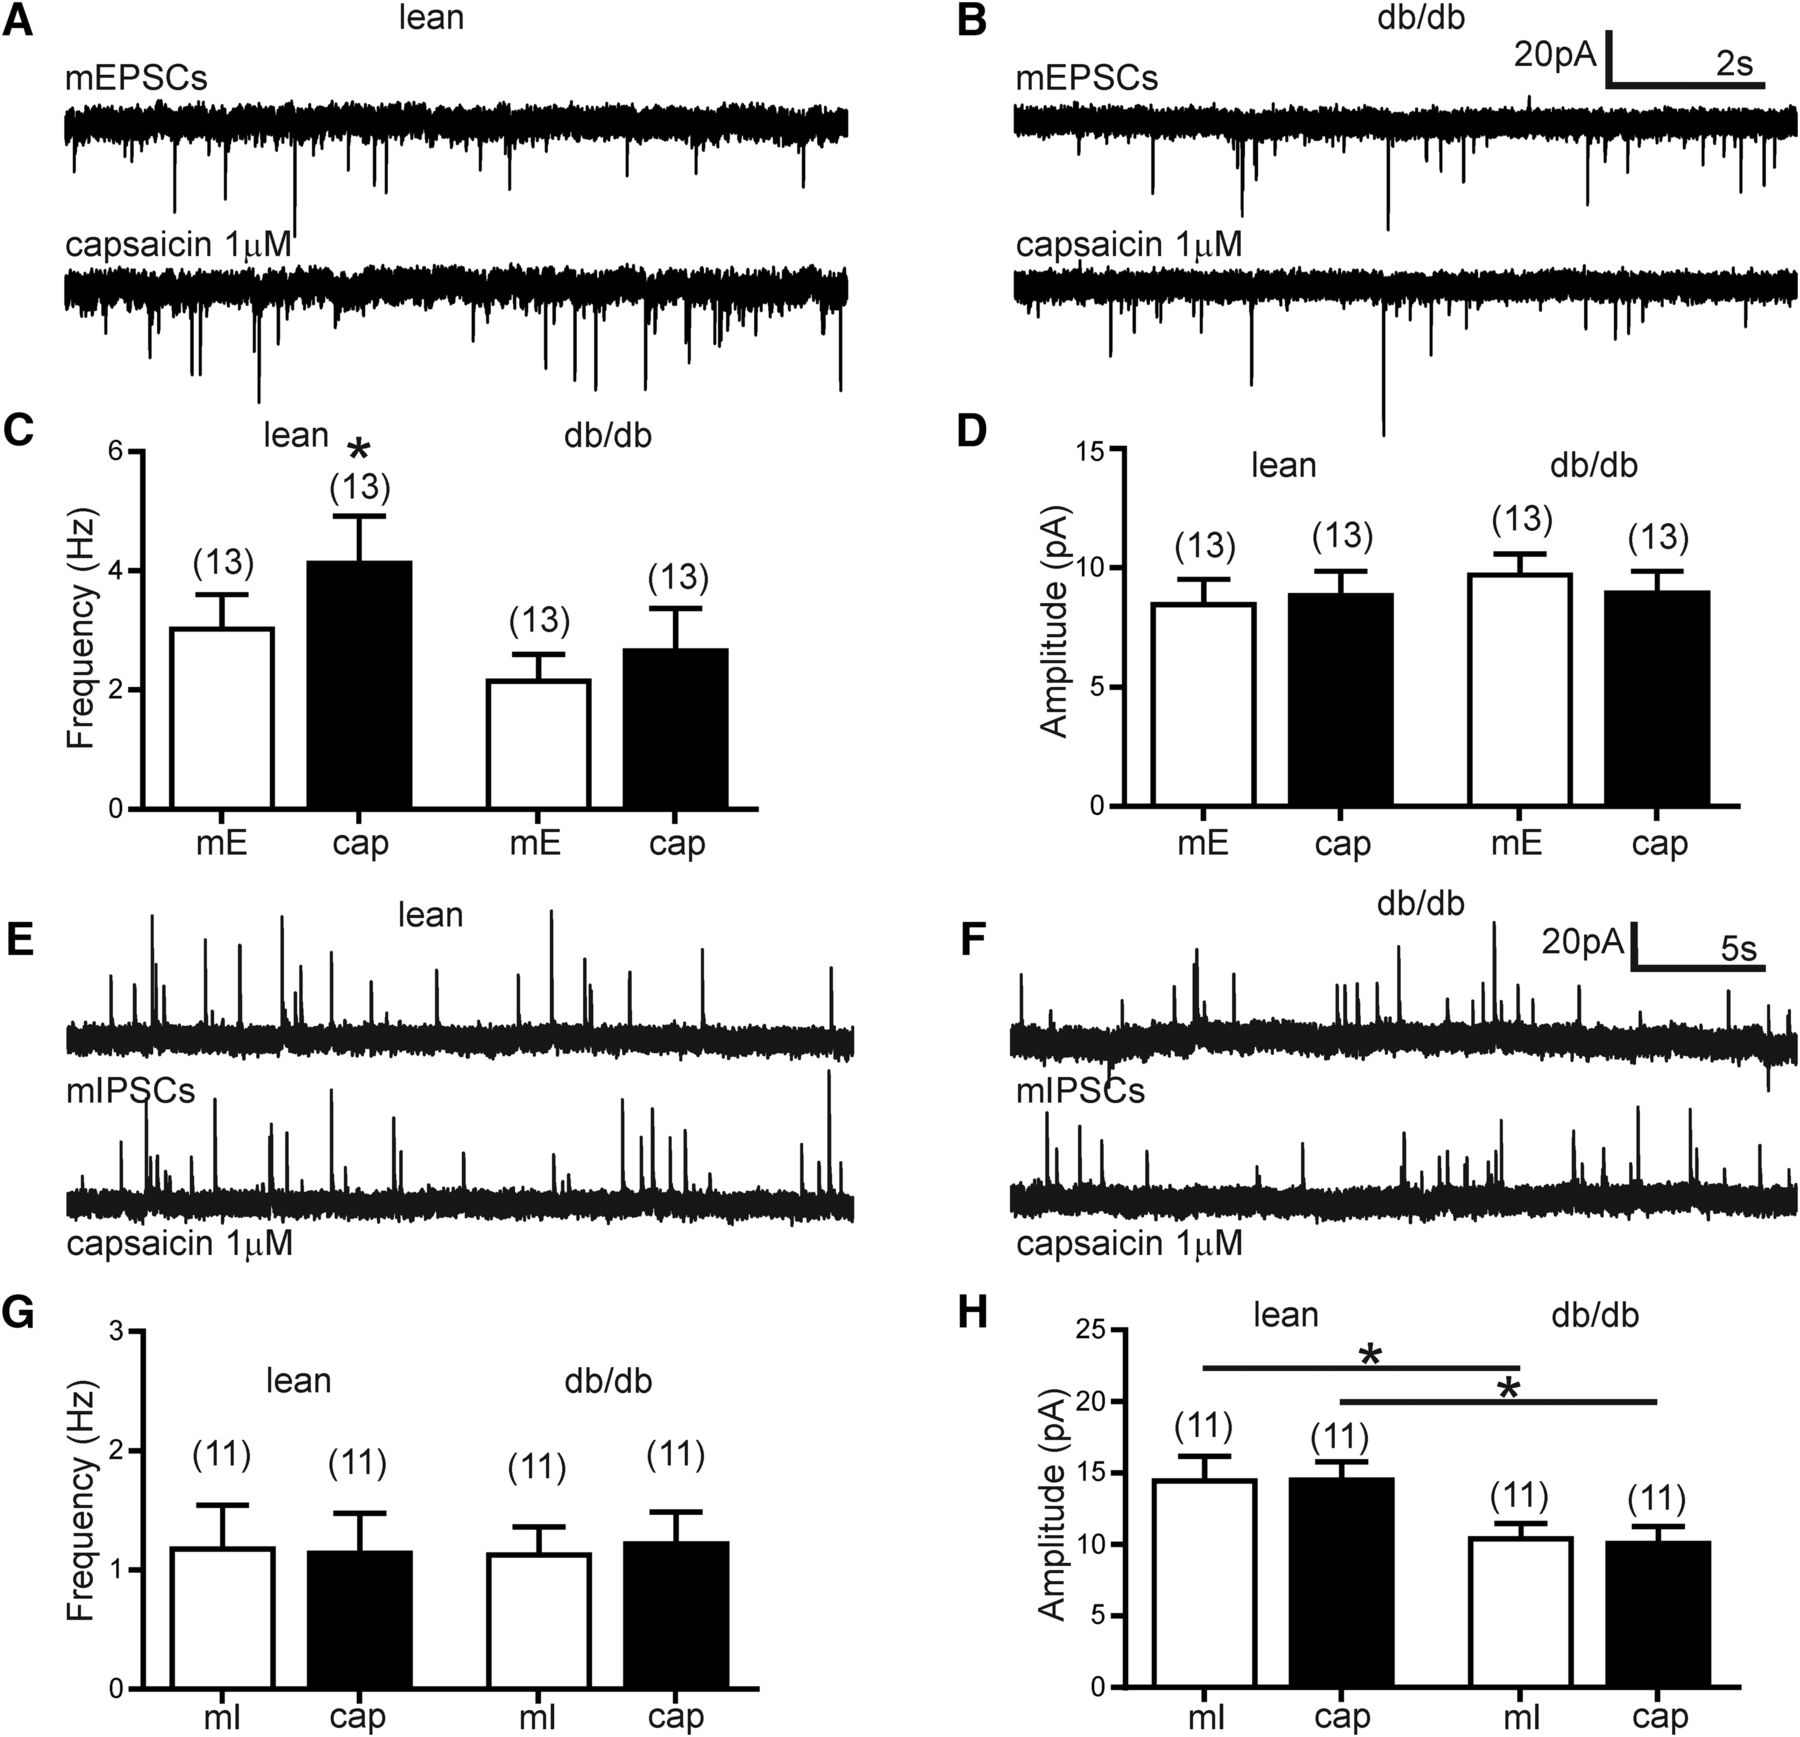 Overactivity of Liver-Related Neurons in the Paraventricular Nucleus on